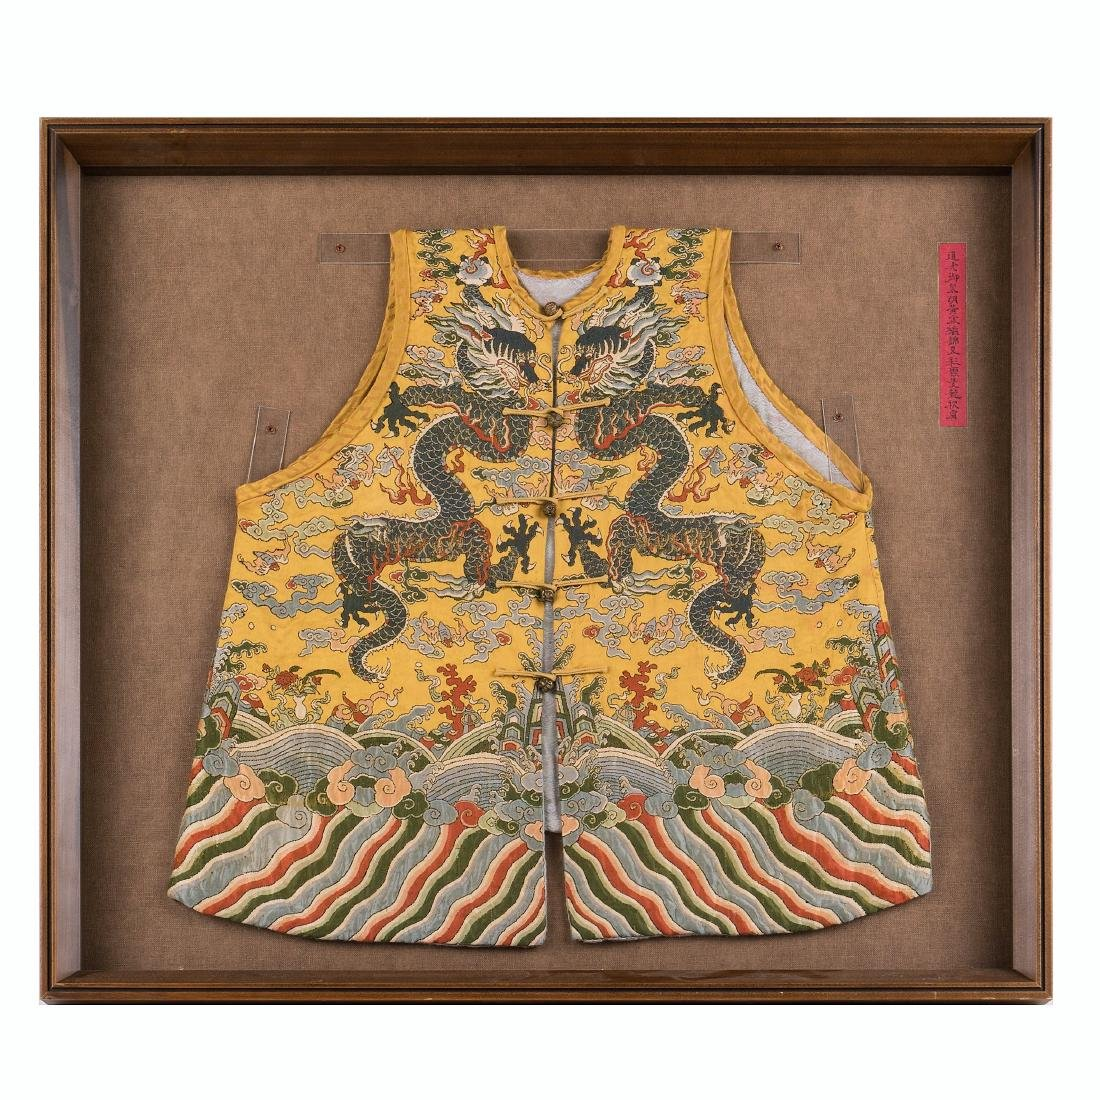 18TH/19TH C. FRAMED QING IMPERIAL DRAGON SILK VEST